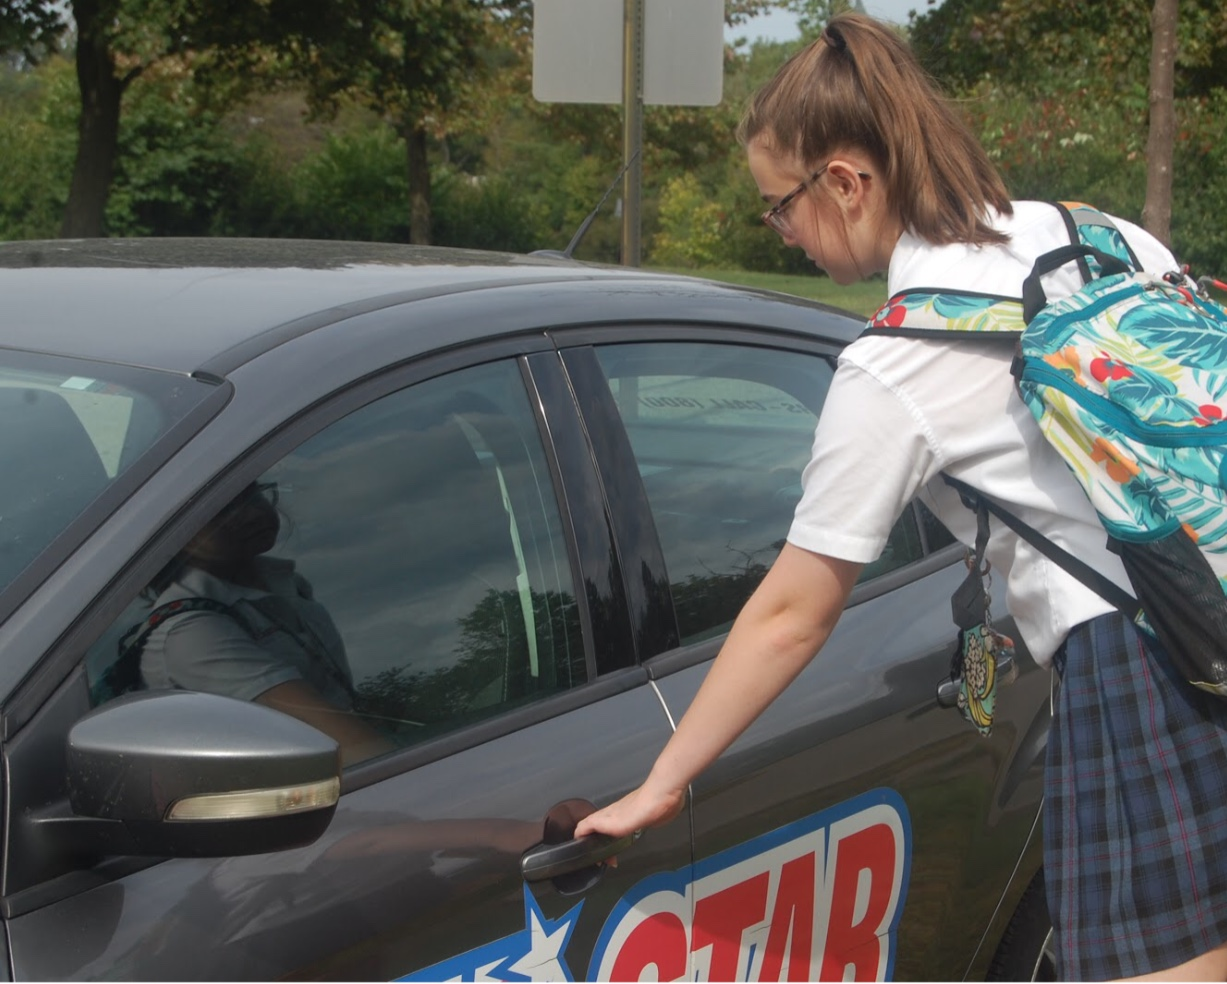 Sophomore Renee Predhomme gets into the All Star car to drive with her instructor for segment one. Photo by Emily Walugembe